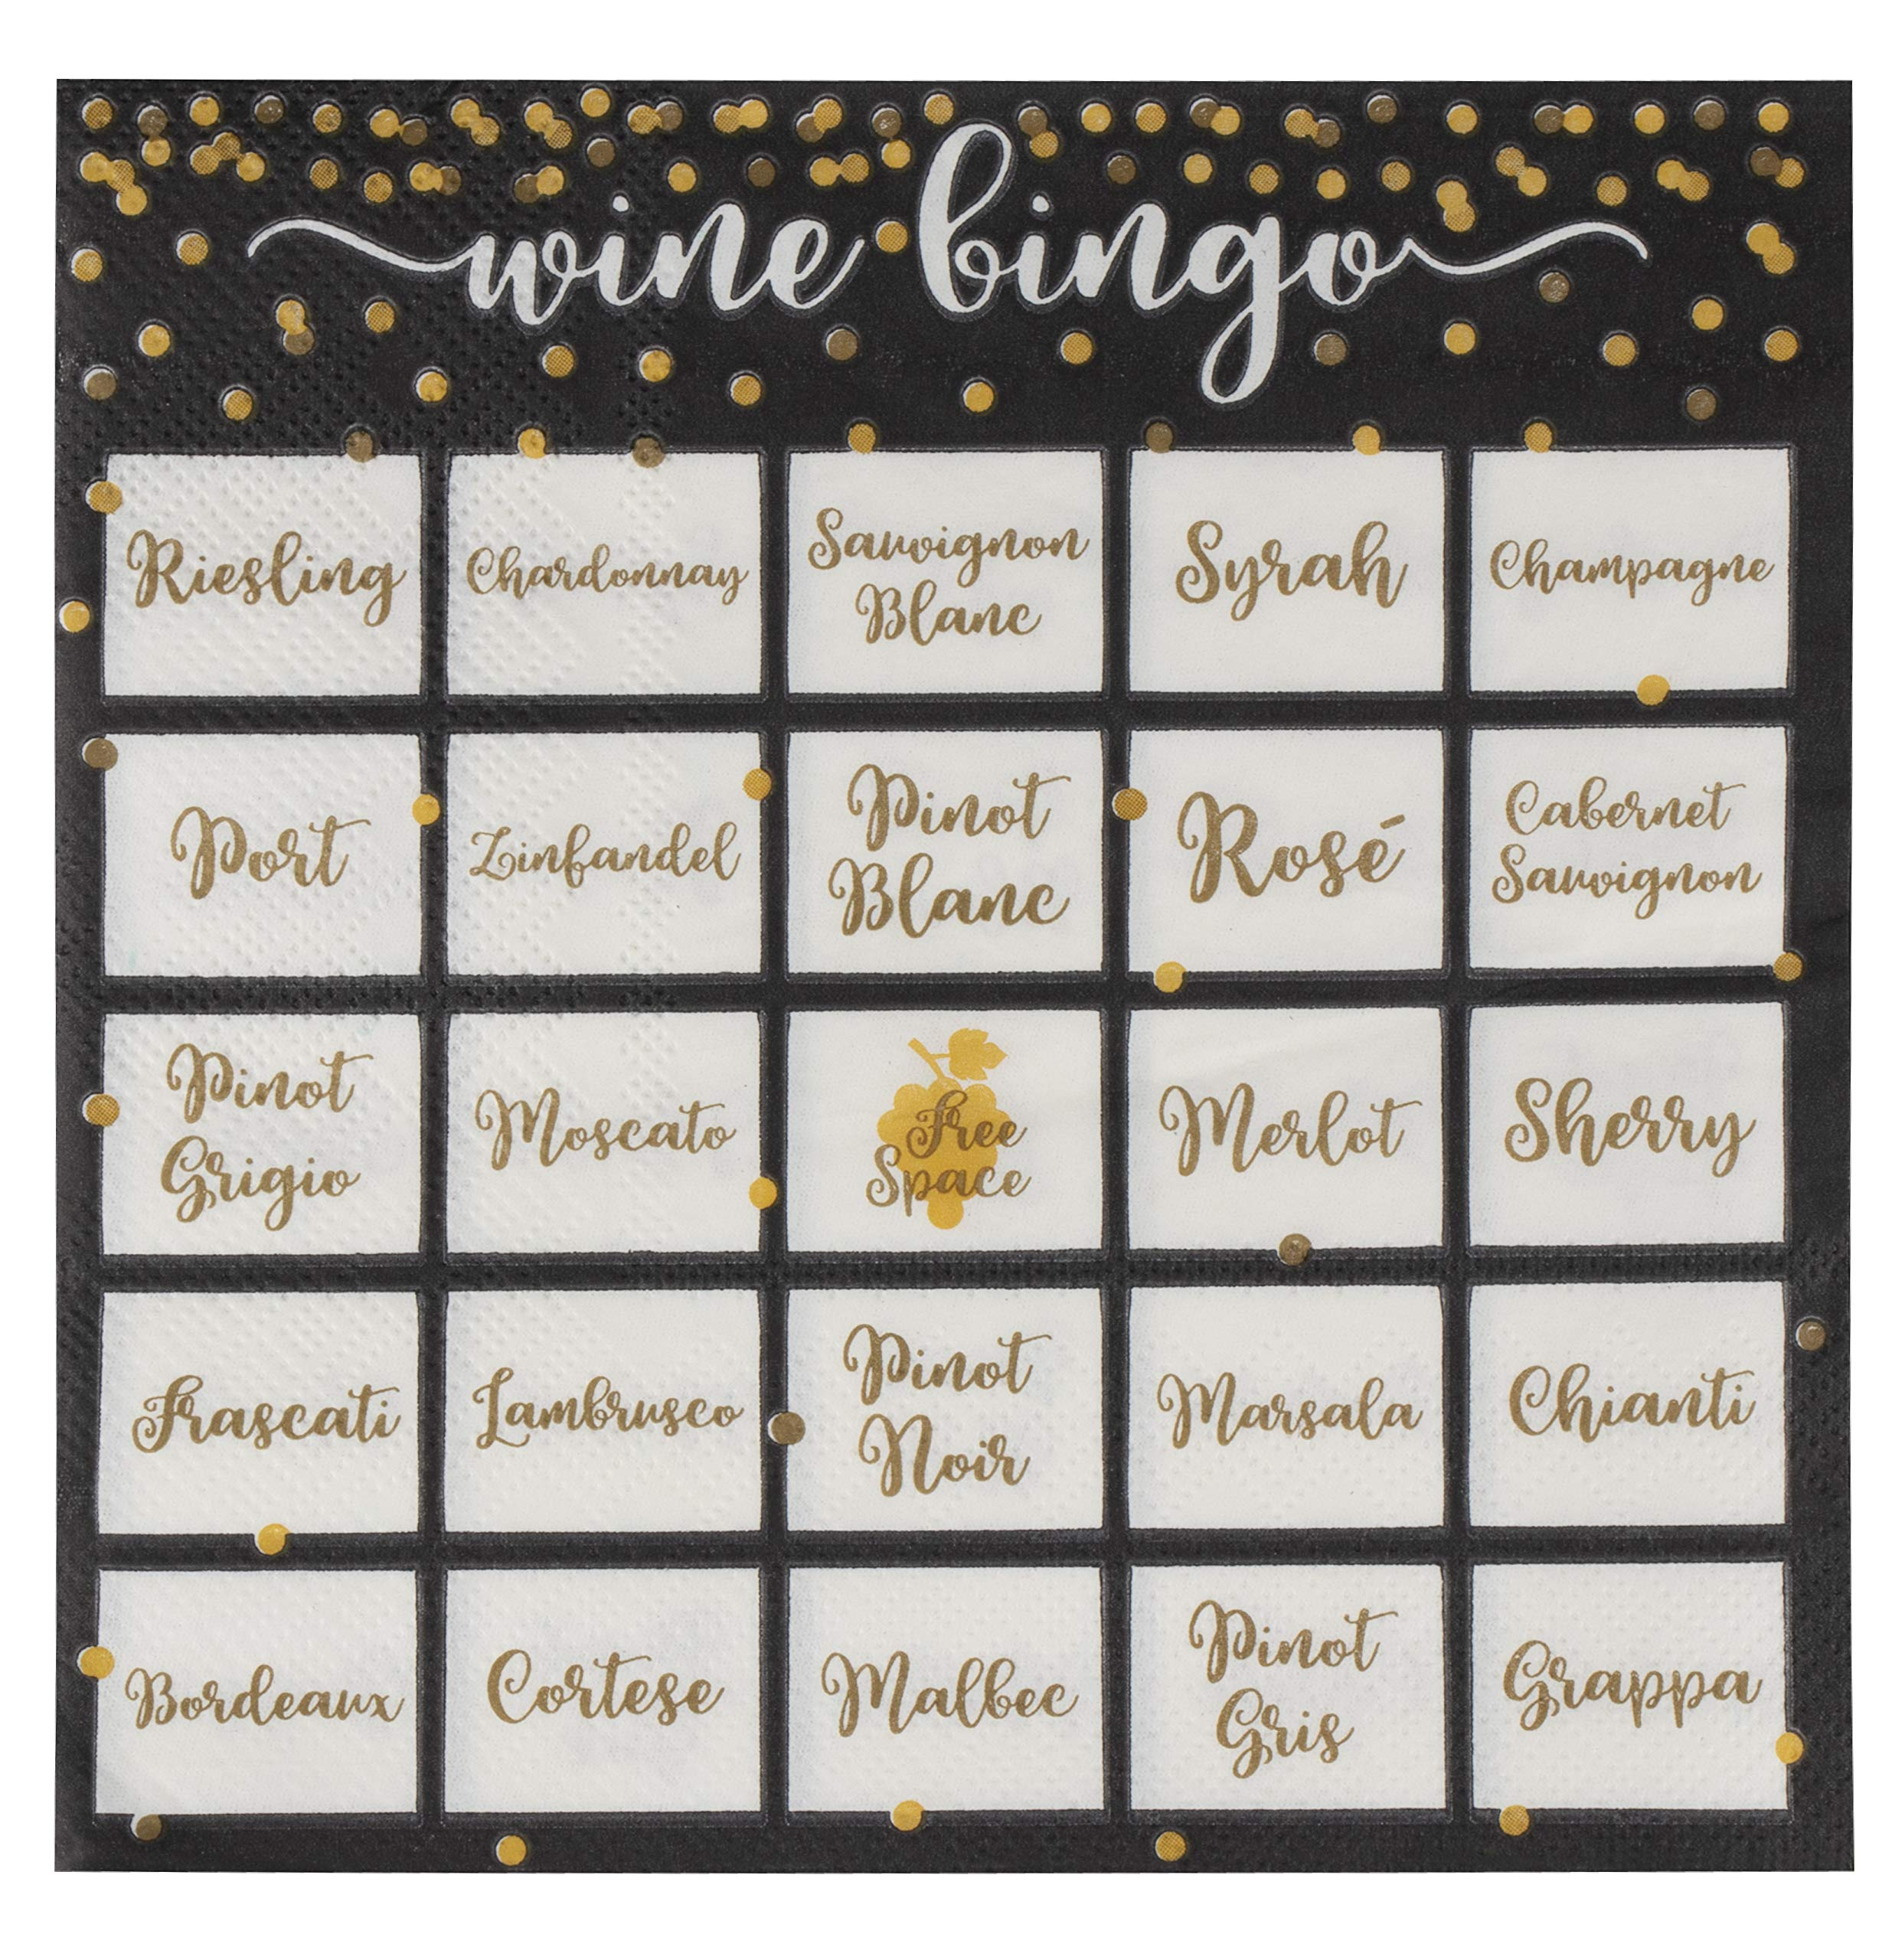 Fun Wine Napkins - 100-Pack Disposable Paper Napkins, 2-Ply, Wine Tasting Party Supplies, Wine Bingo Print, Black, Luncheon Size Folded 6.5 x 6.5 Inches